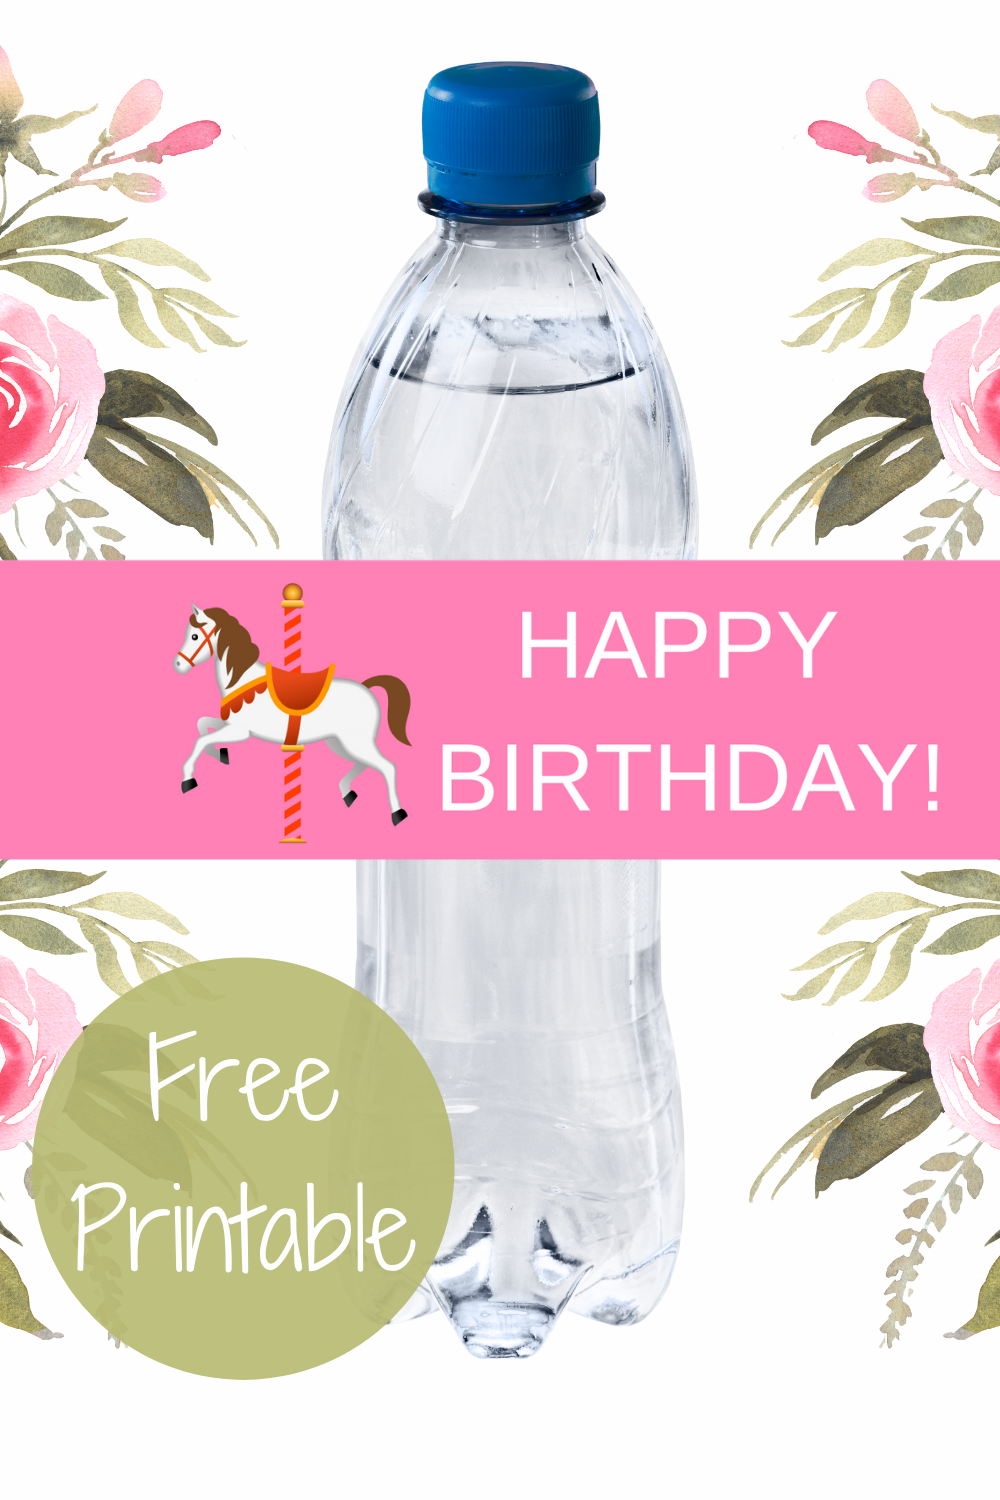 free download: carousel water bottle label for birthday party